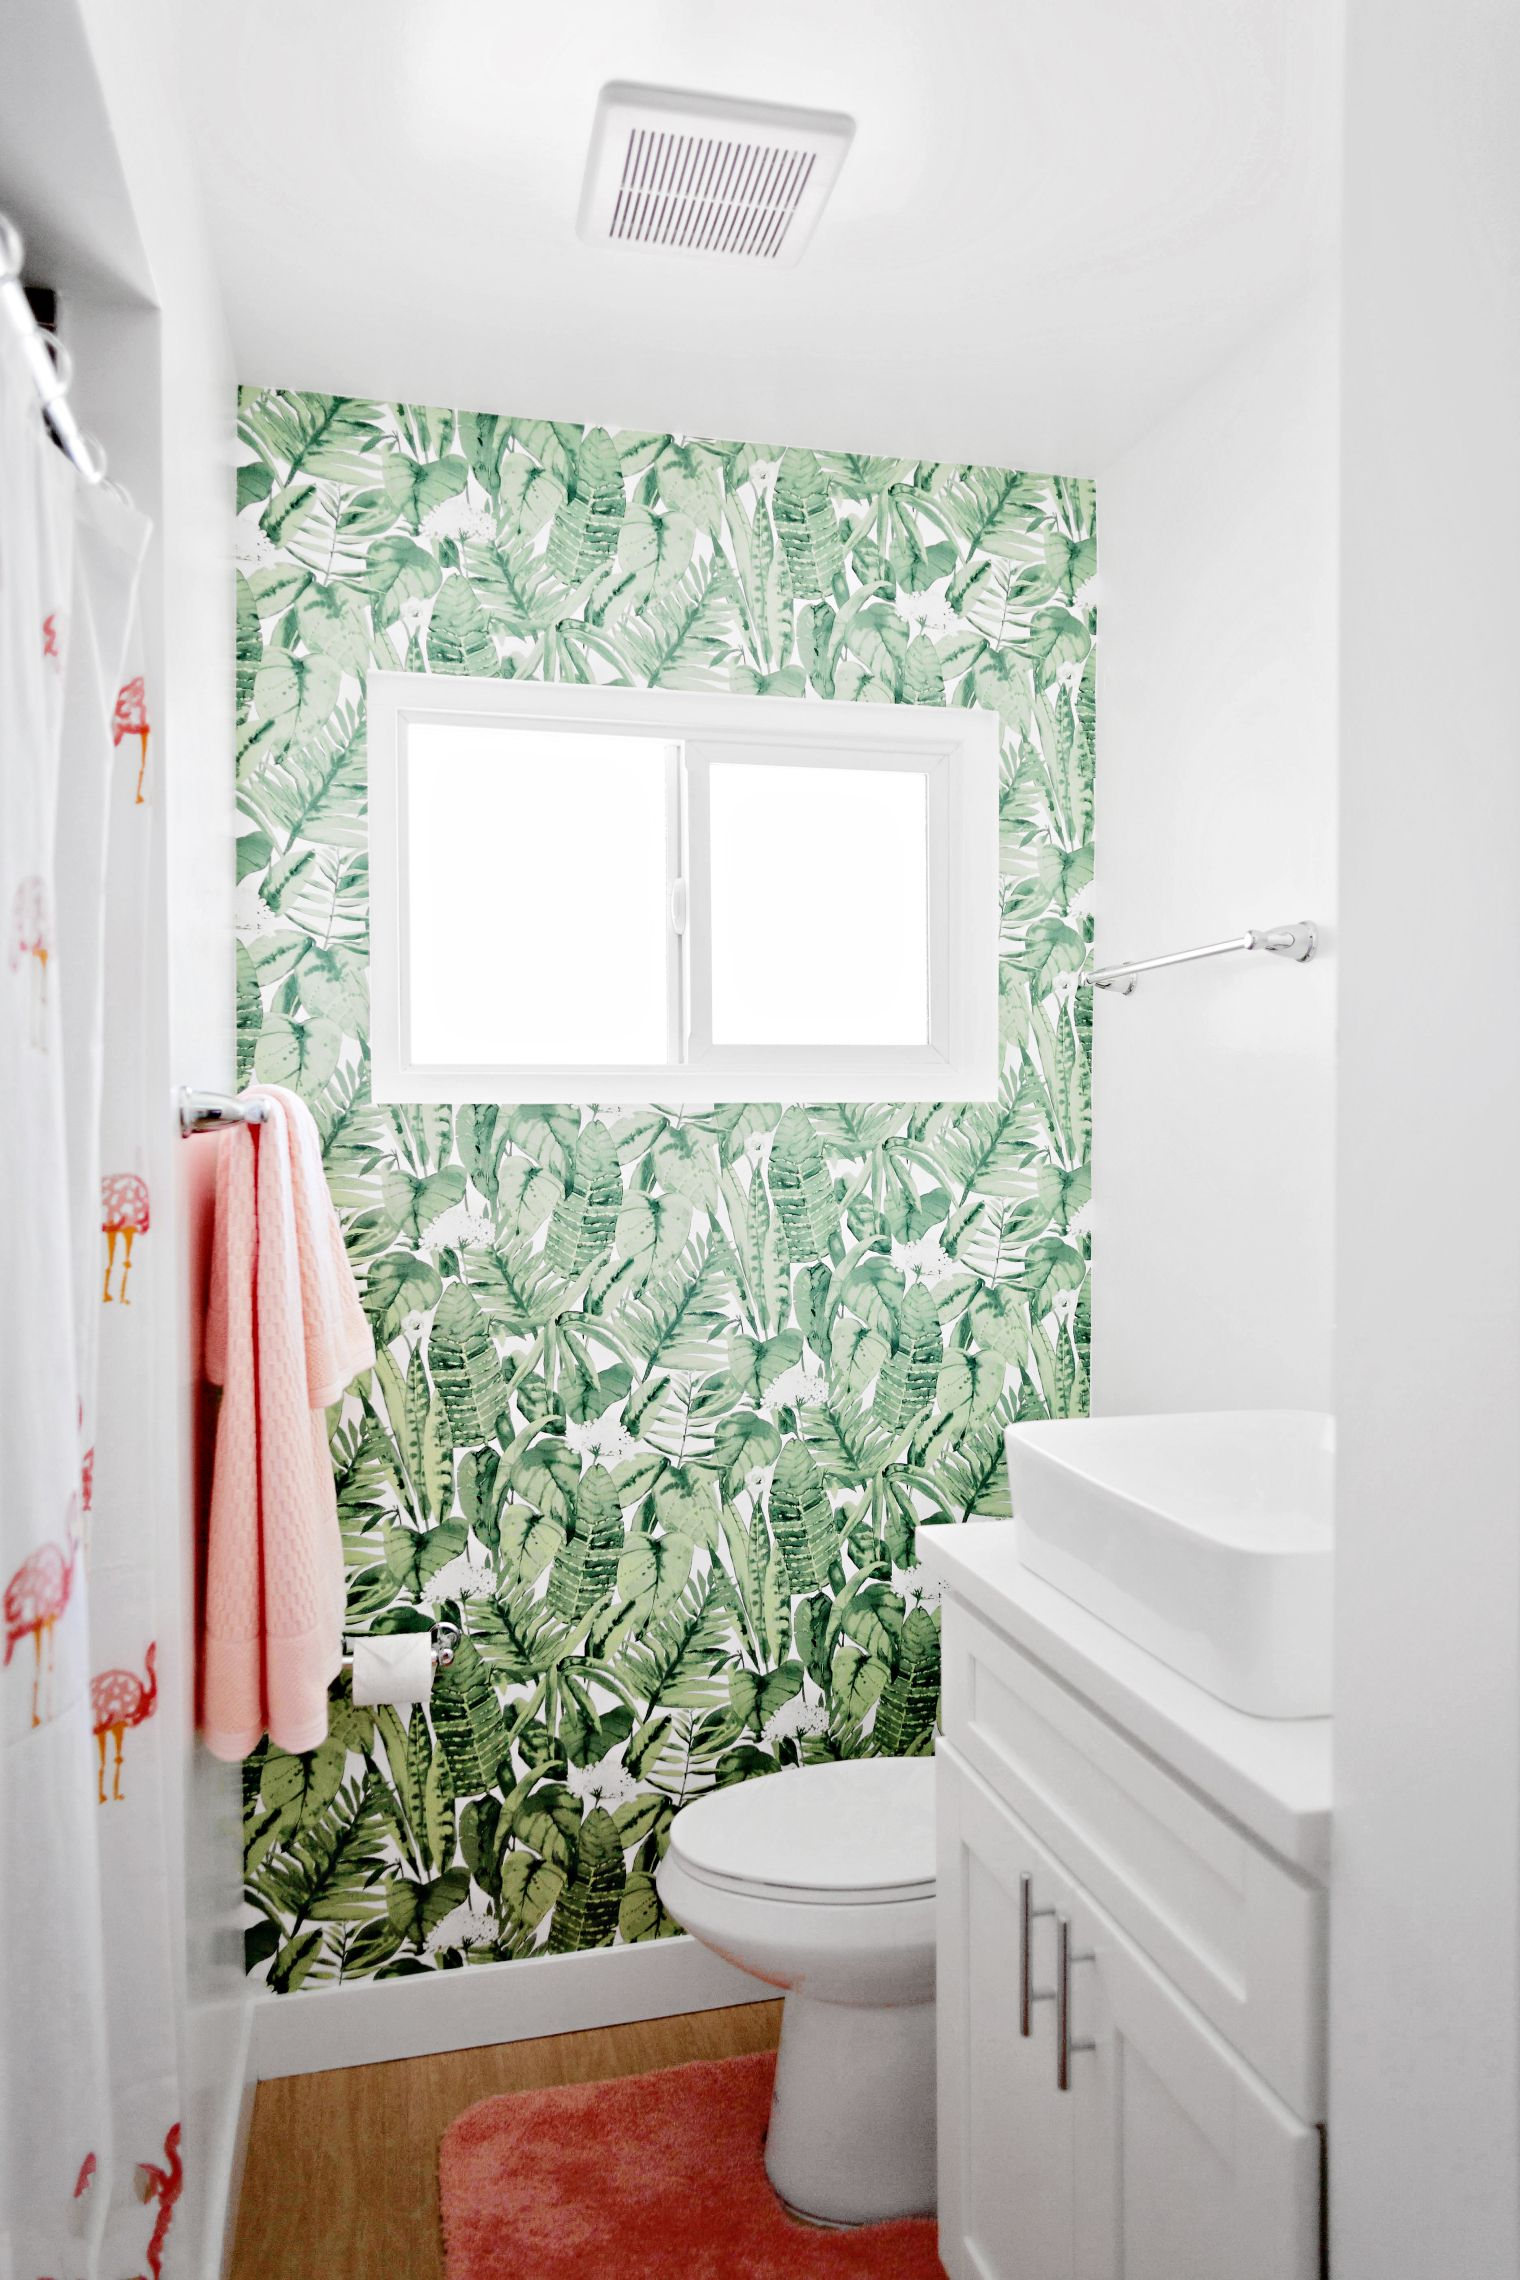 How to install peel and stick Tempaper wall paper in a bathroom (8 ...